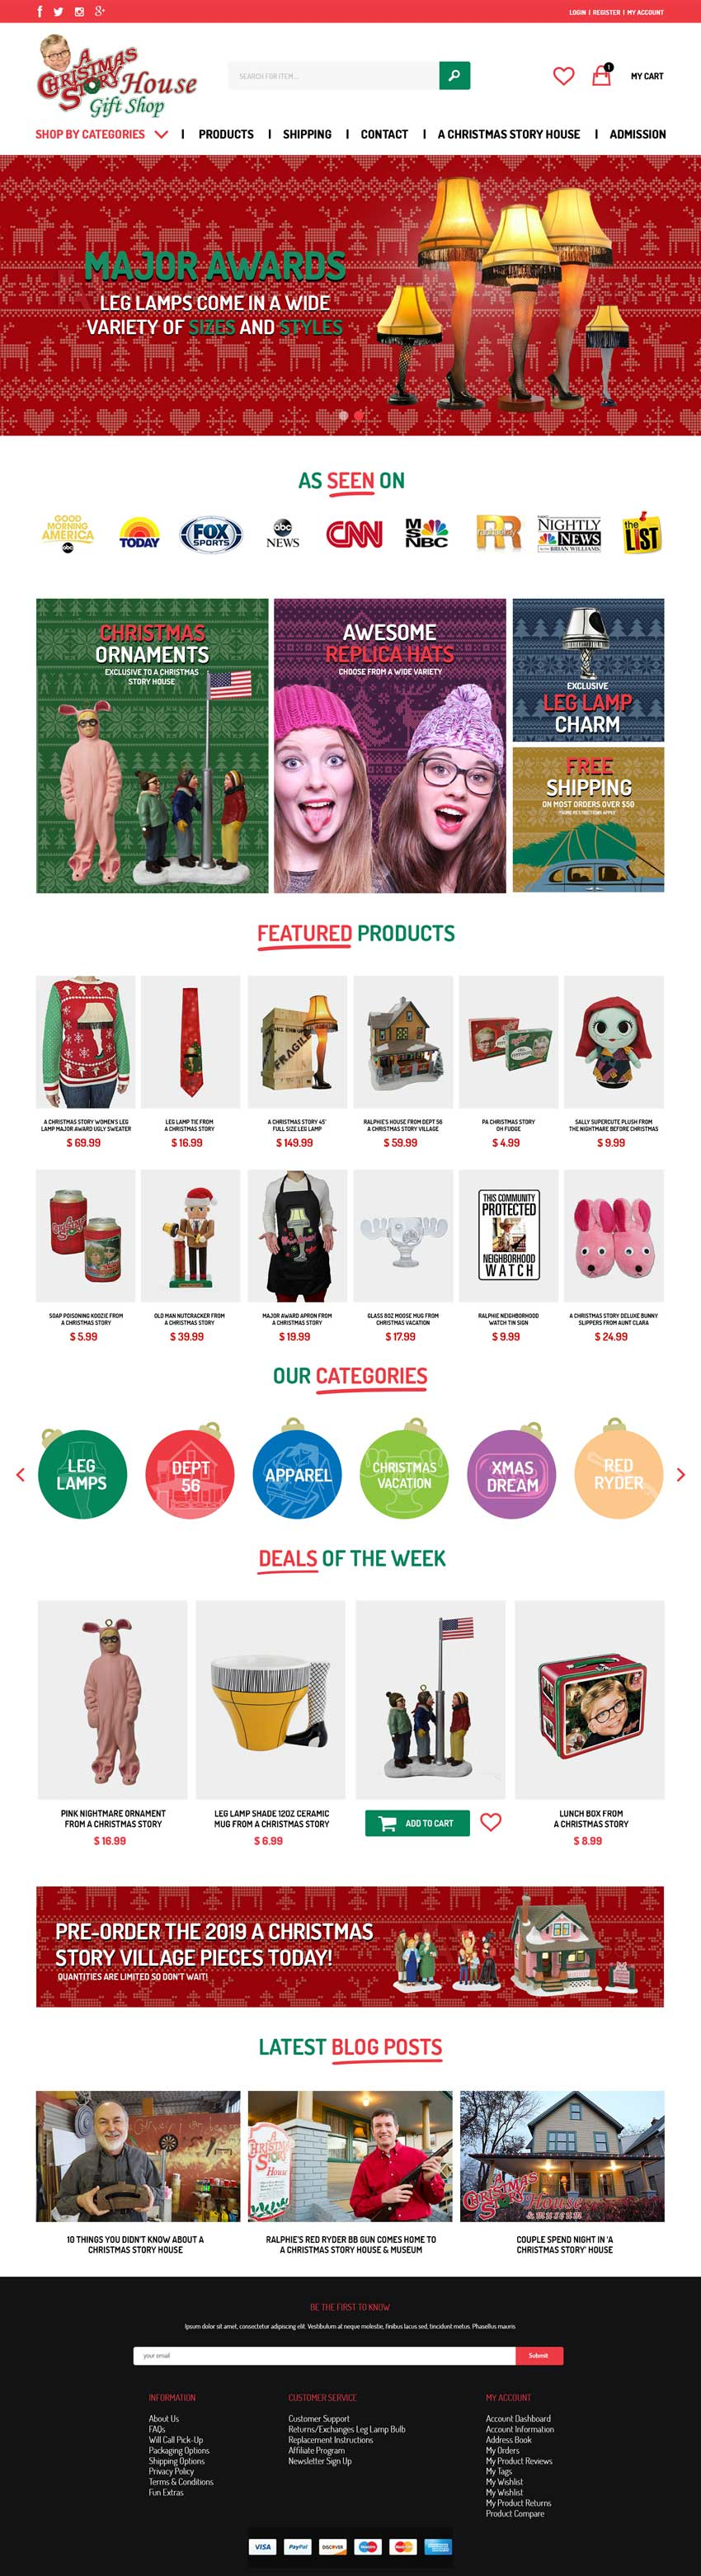 Image of A Christmas Story House Gift Shop web page design